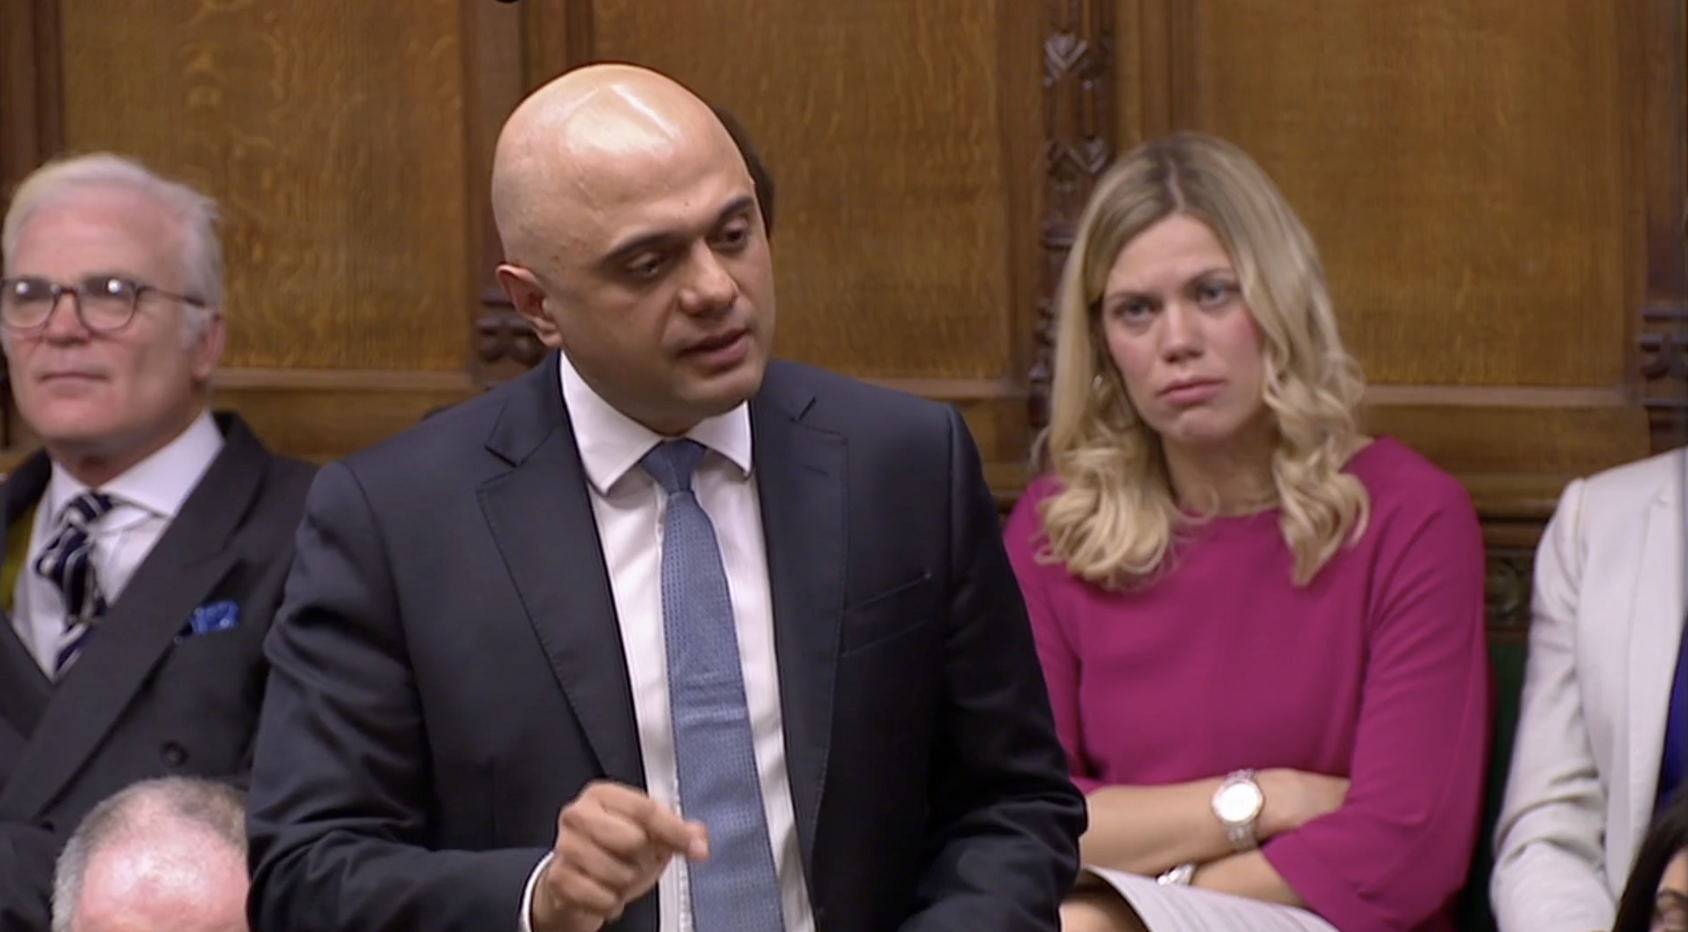 Javid blasts Johnson aide in post-resignation Commons statement - channel 4